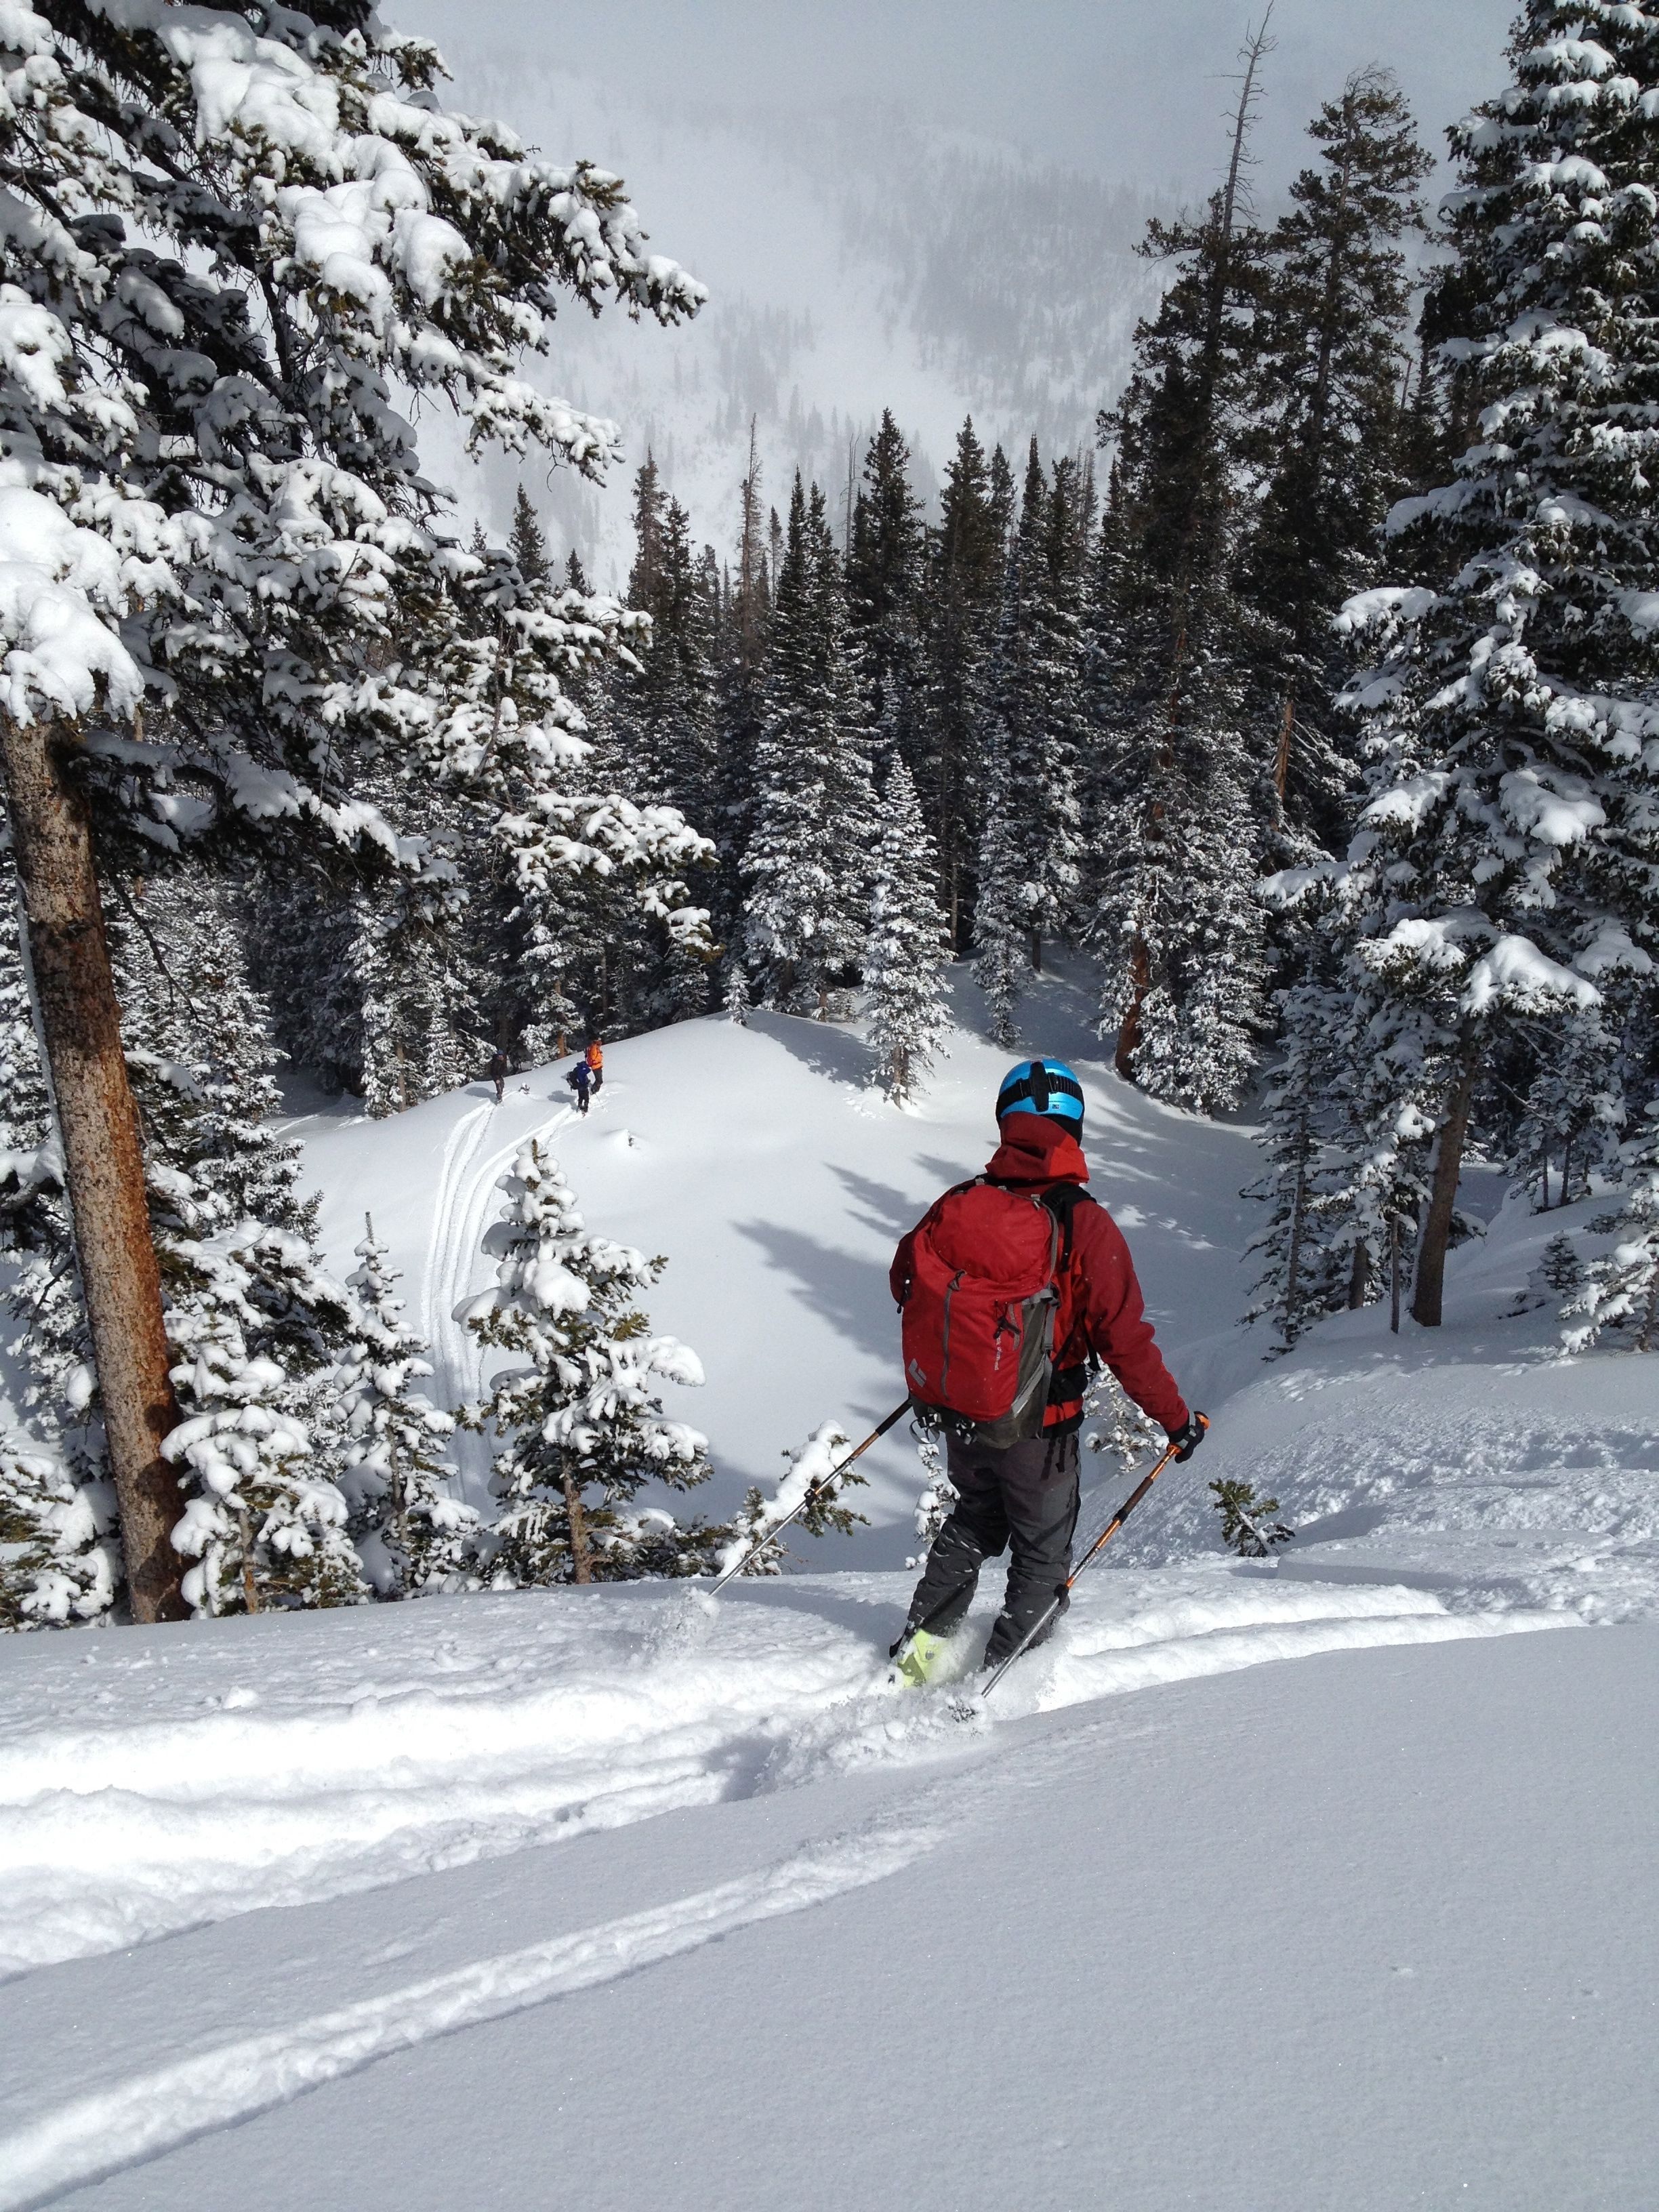 Backcountry skiing near Crested Butte